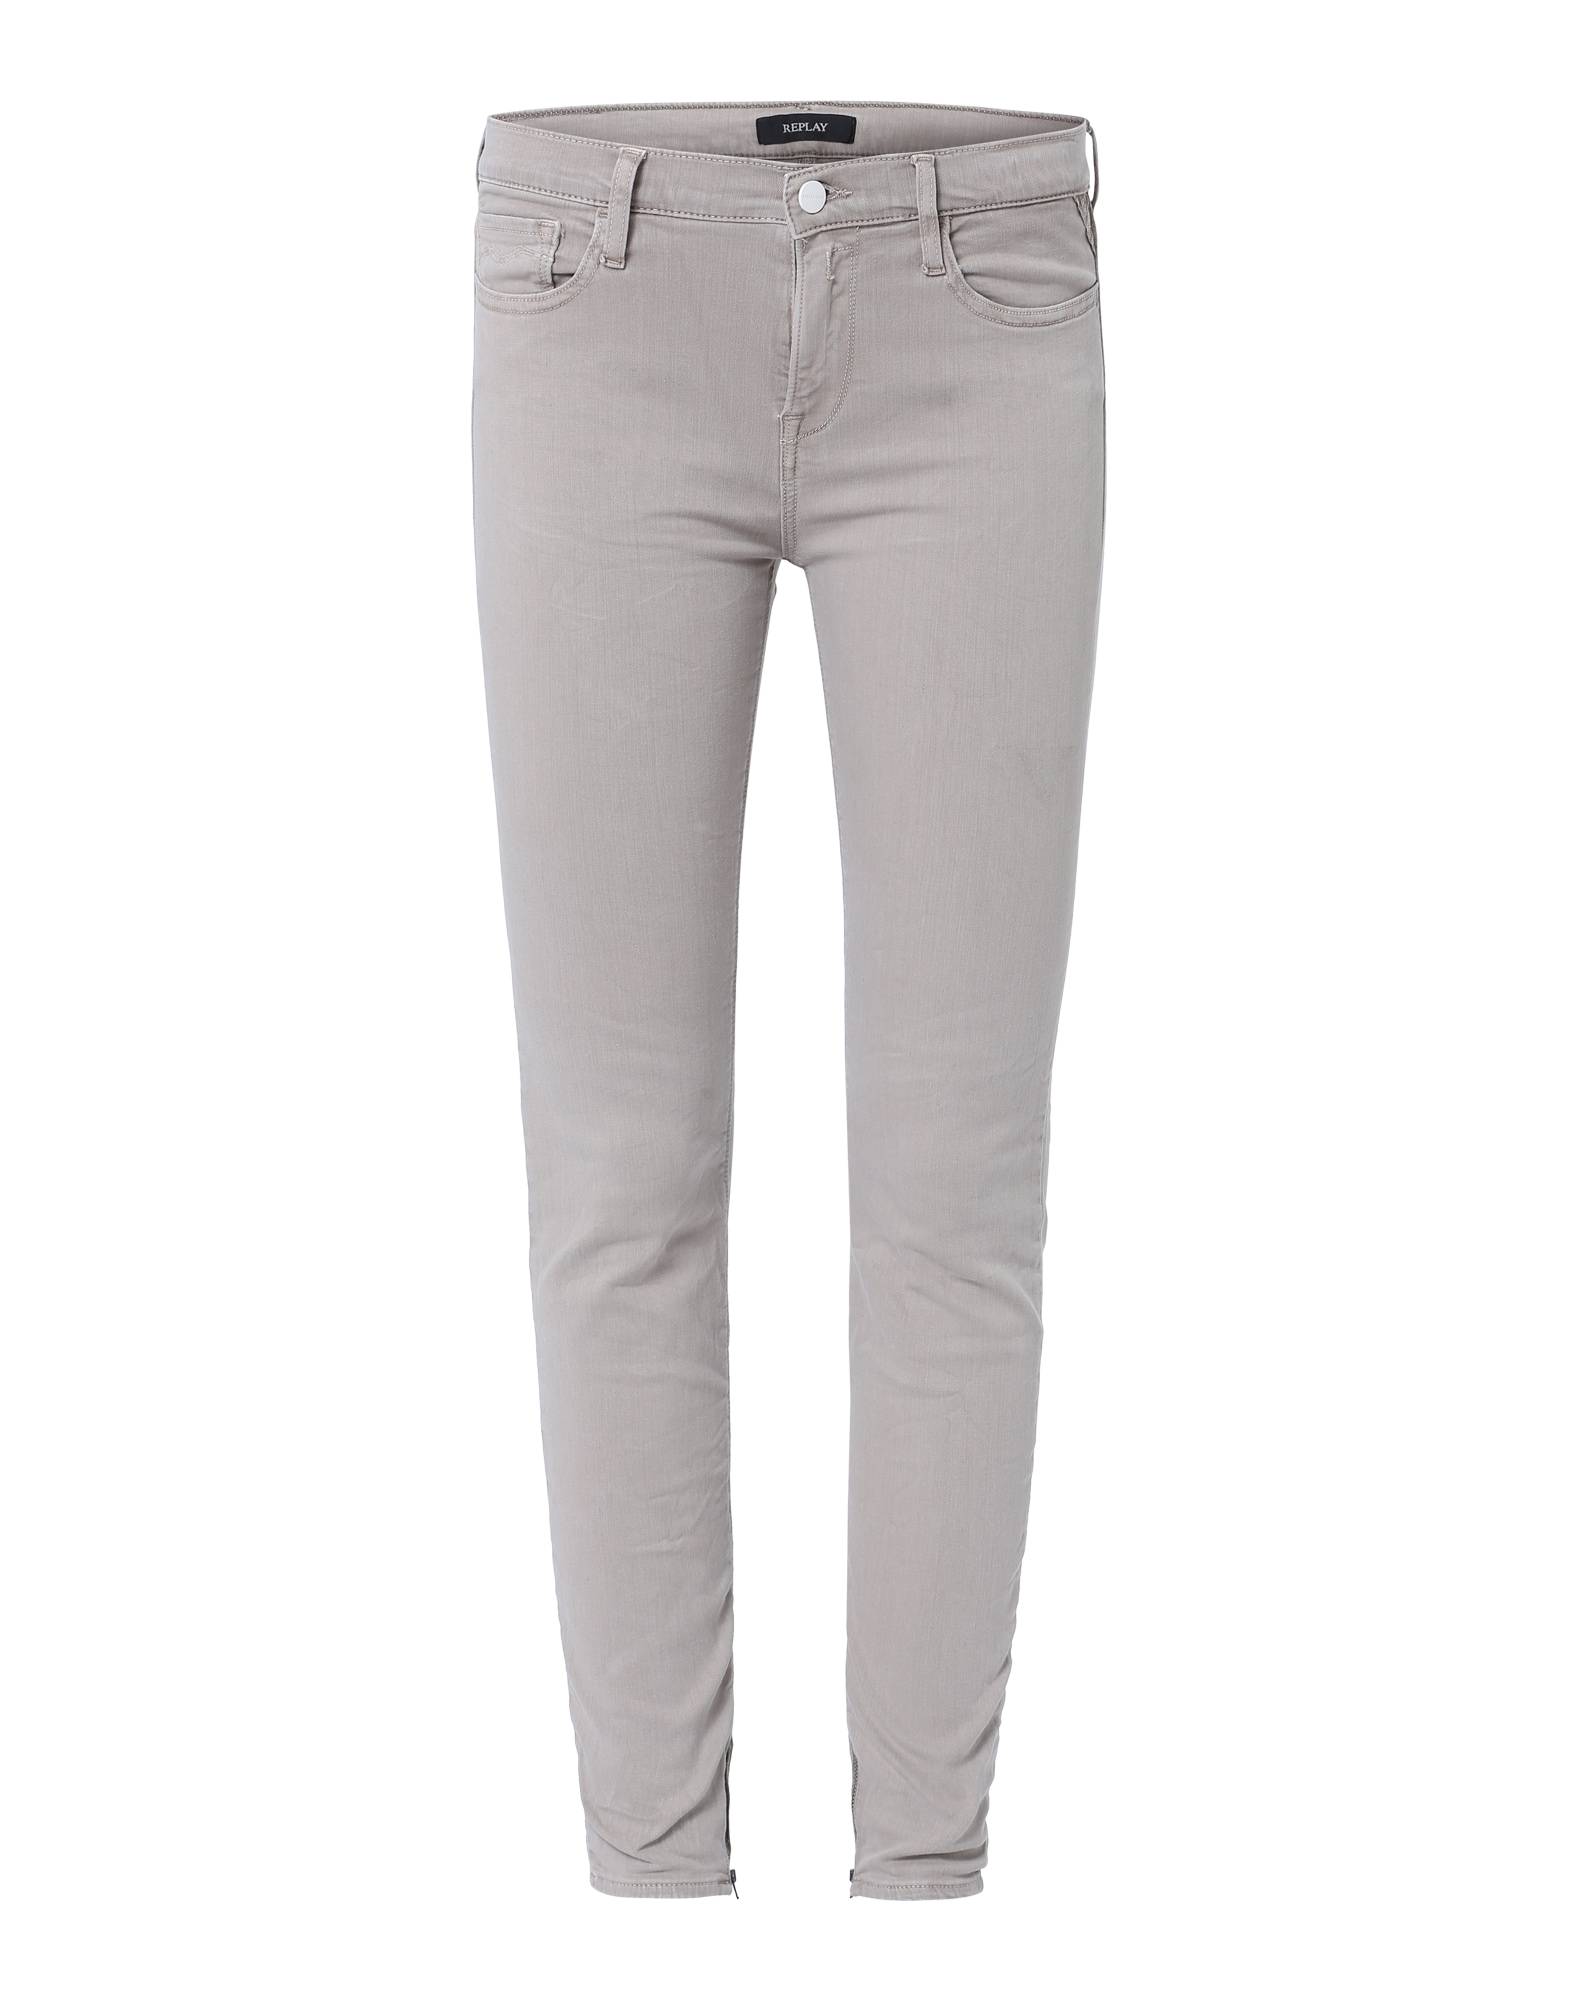 REPLAY Dames Jeans Joi beige